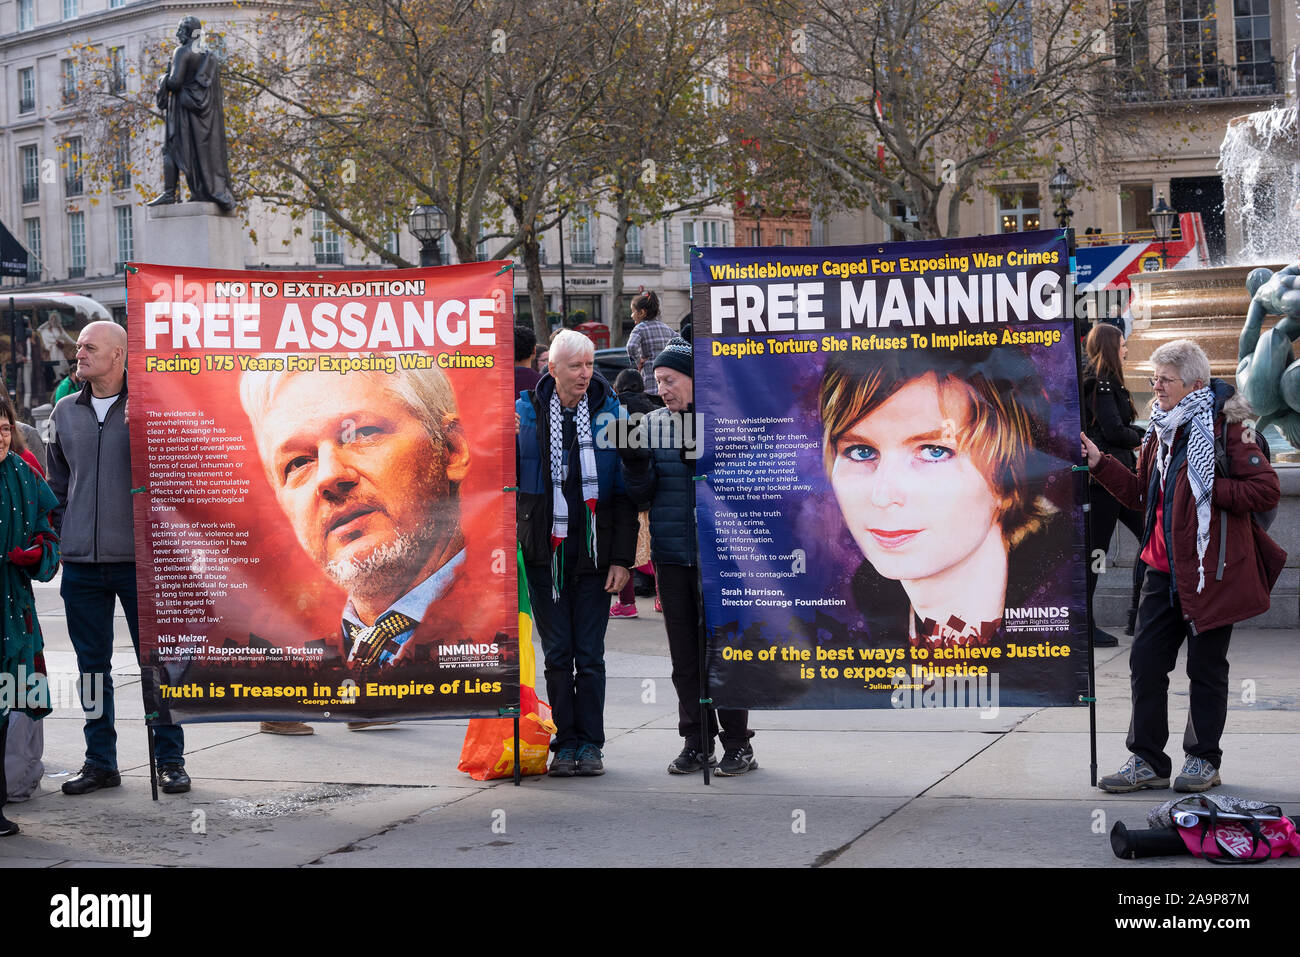 london-uk-16th-november-2019-protesters-gathered-in-trafalgar-square-to-demand-the-release-of-julian-assange-and-chelsea-manning-assange-is-currently-in-belmarsh-prison-awaiting-an-extradition-hearing-he-faces-extradition-re-charges-in-the-usa-relating-to-computer-intrusion-and-the-espionage-act-1917-relating-to-wikileaks-and-information-leaked-by-chelsea-manning-organised-by-the-committee-to-defend-julian-assange-credit-stephen-bellalamy-2A9P87M.jpg